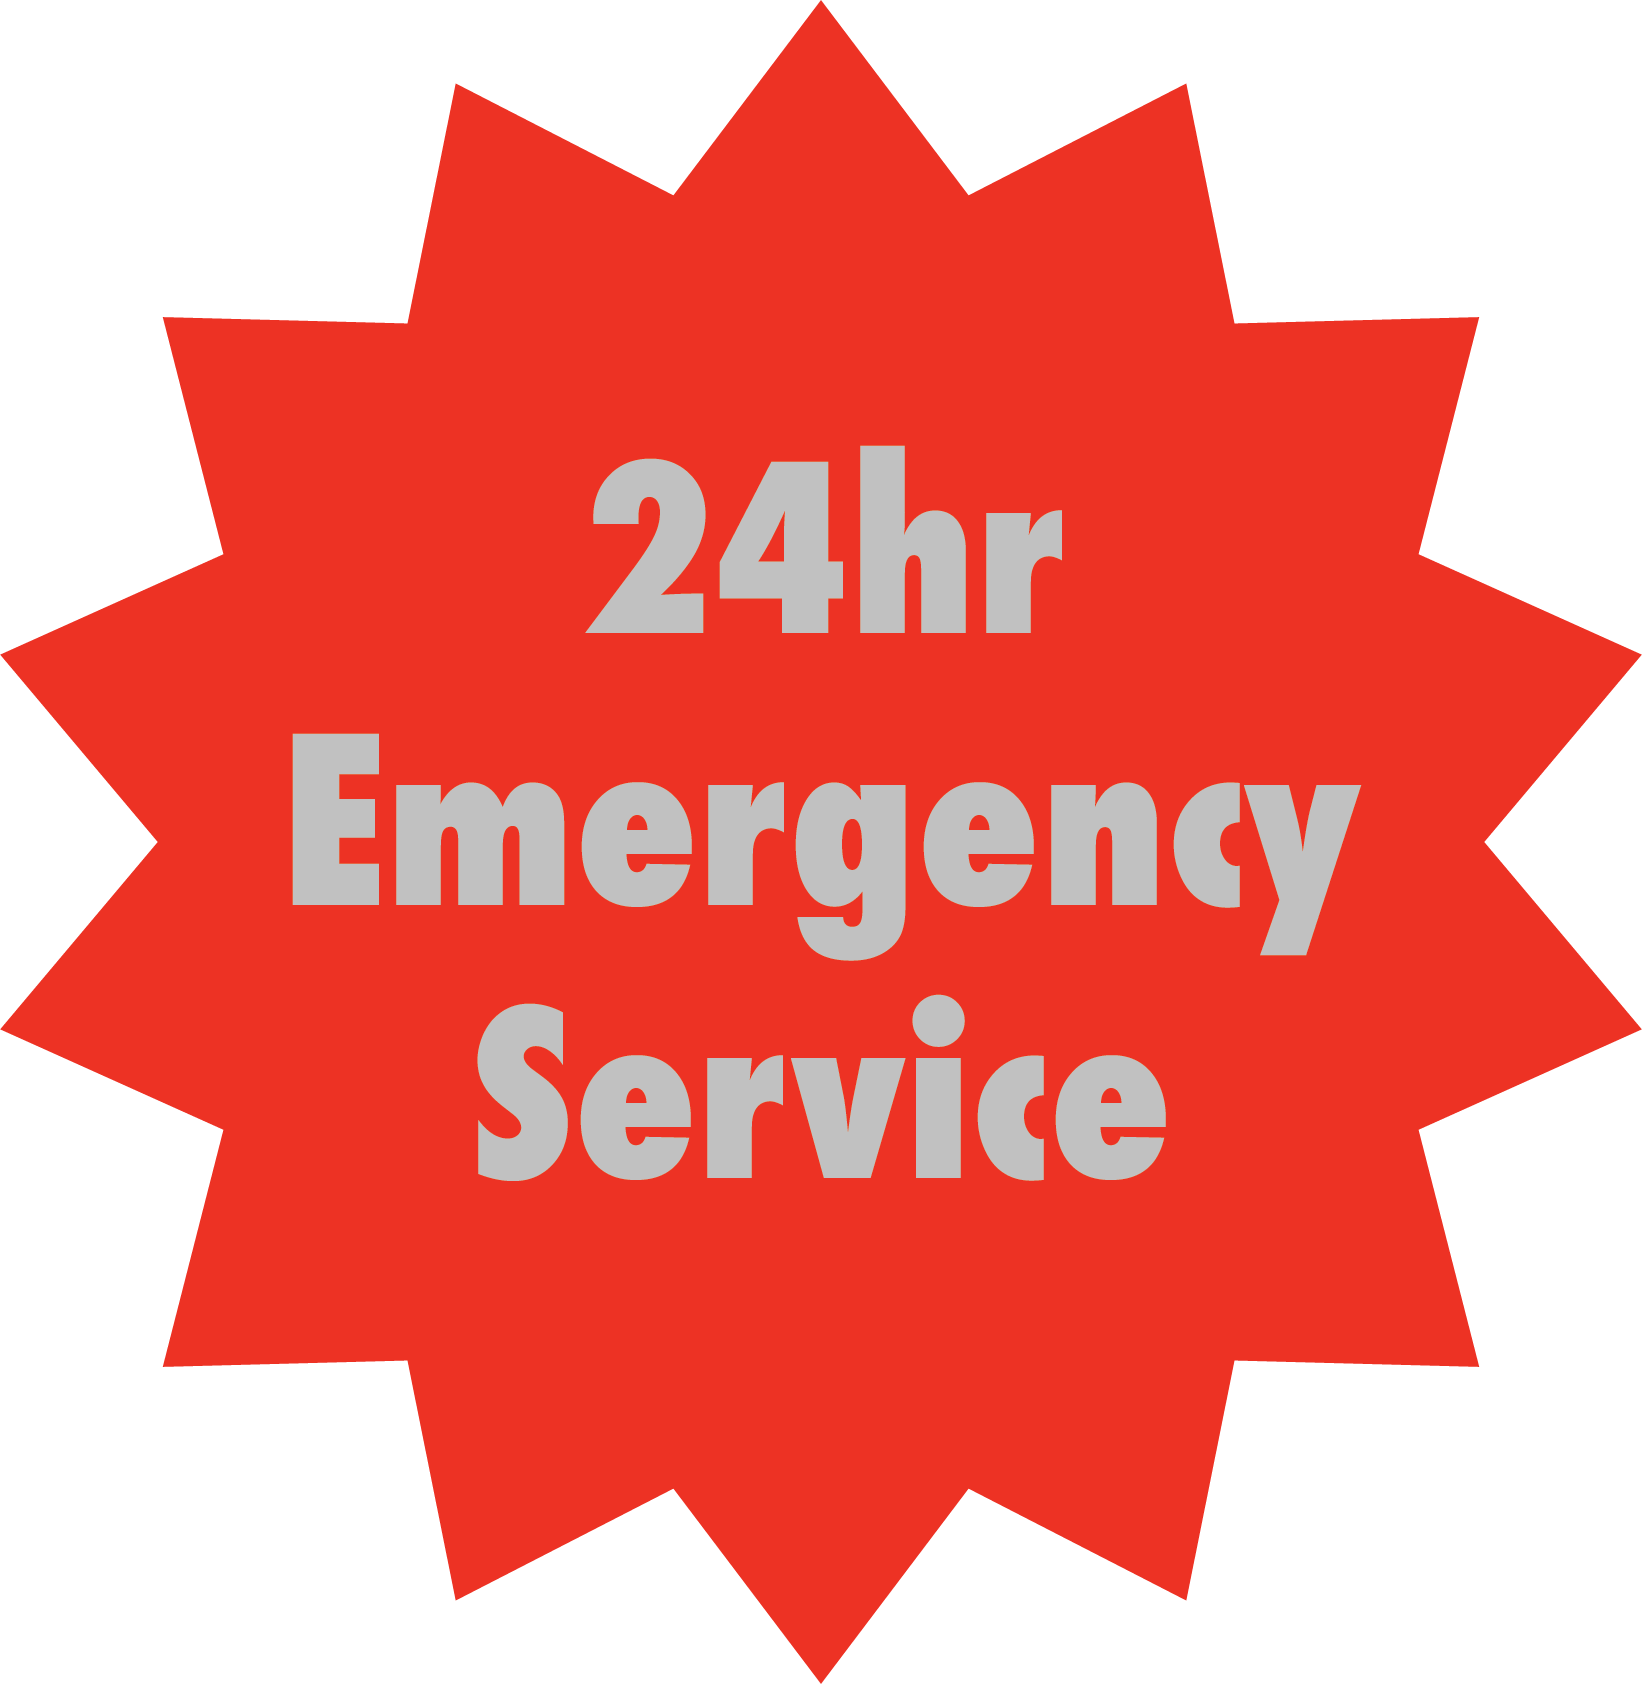 24hr Emergency Service.png